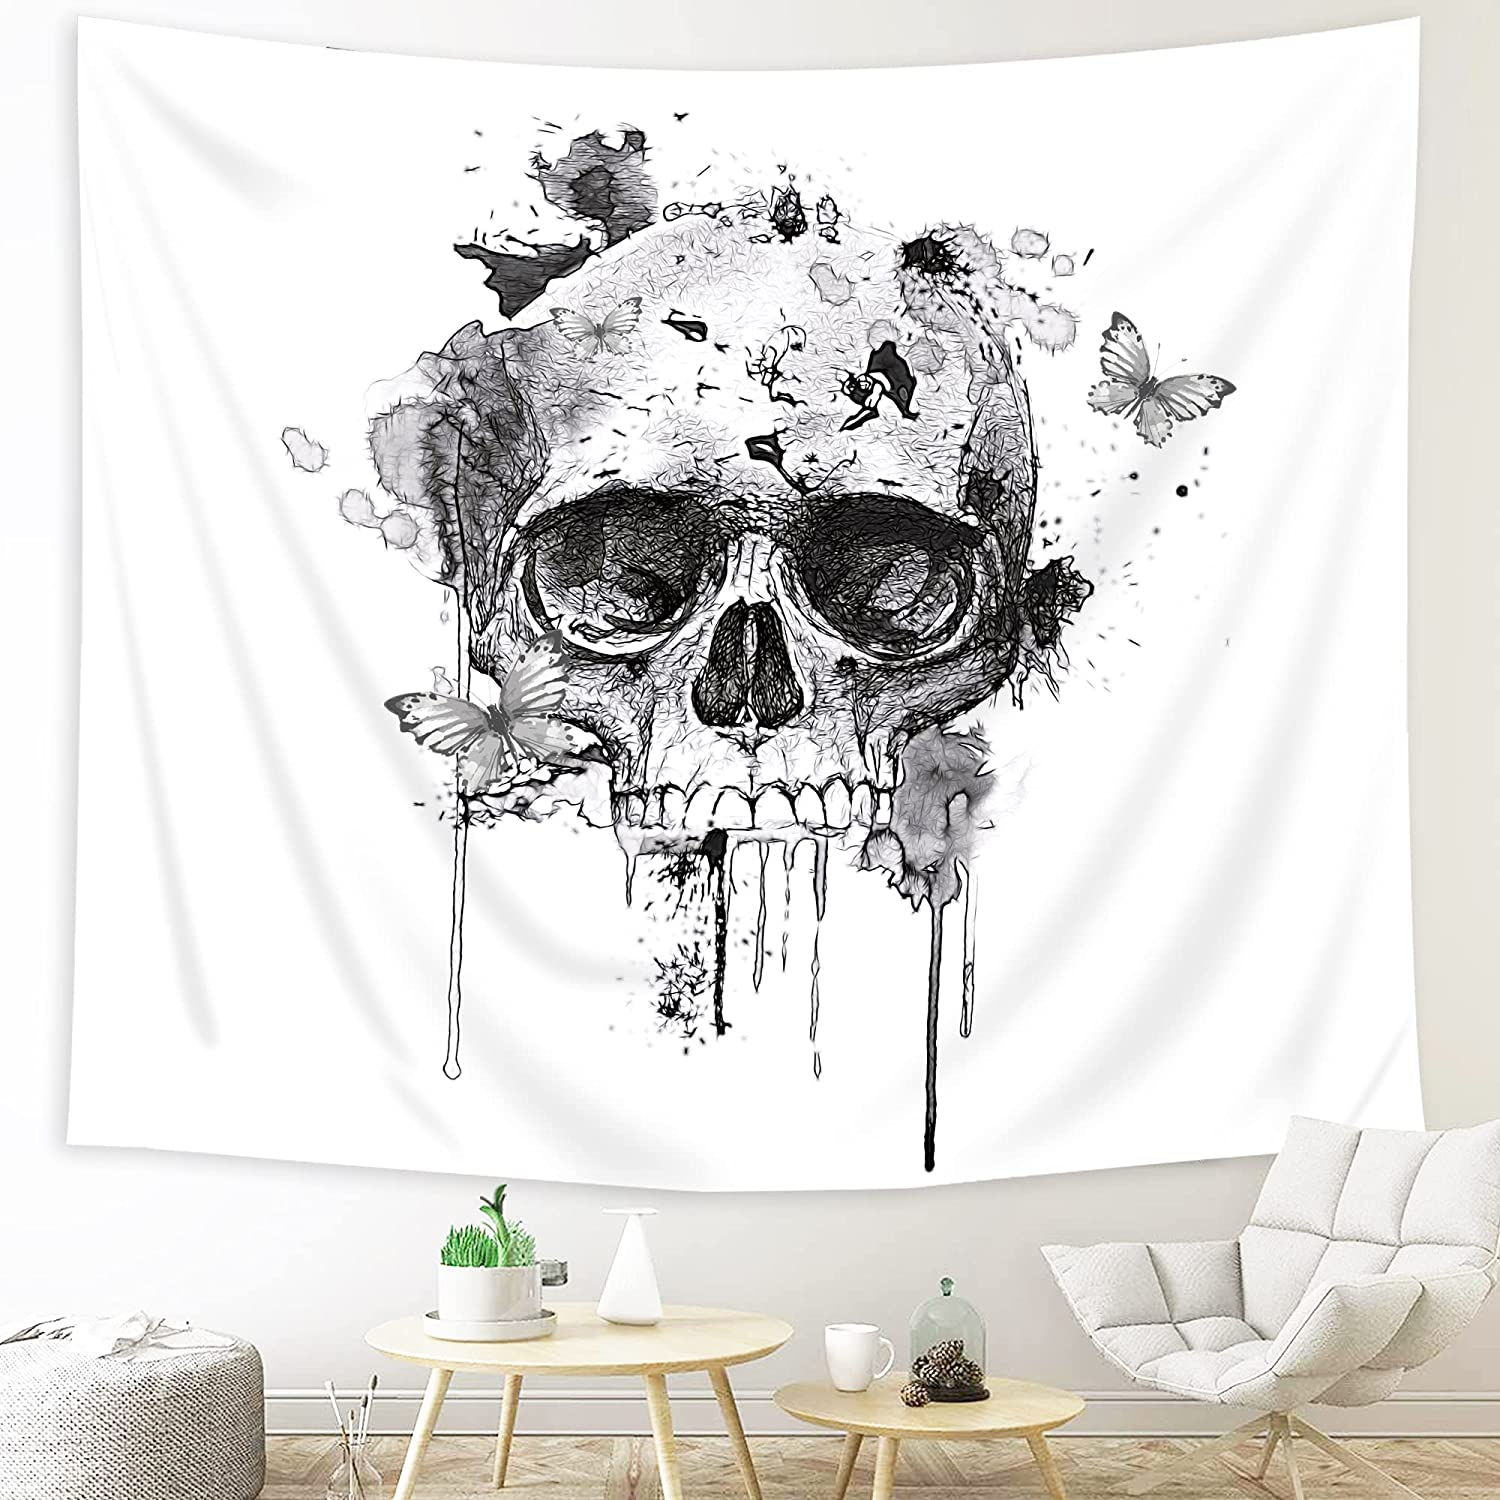 Imirell Black White Skull Tapestry 51H x 59W Inches Watercolor Grey Butterfly Human Abstract Indie Skeleton Wall Hanging Bedroom Living Room Dorm Wall Blankets Home Decor Fabric